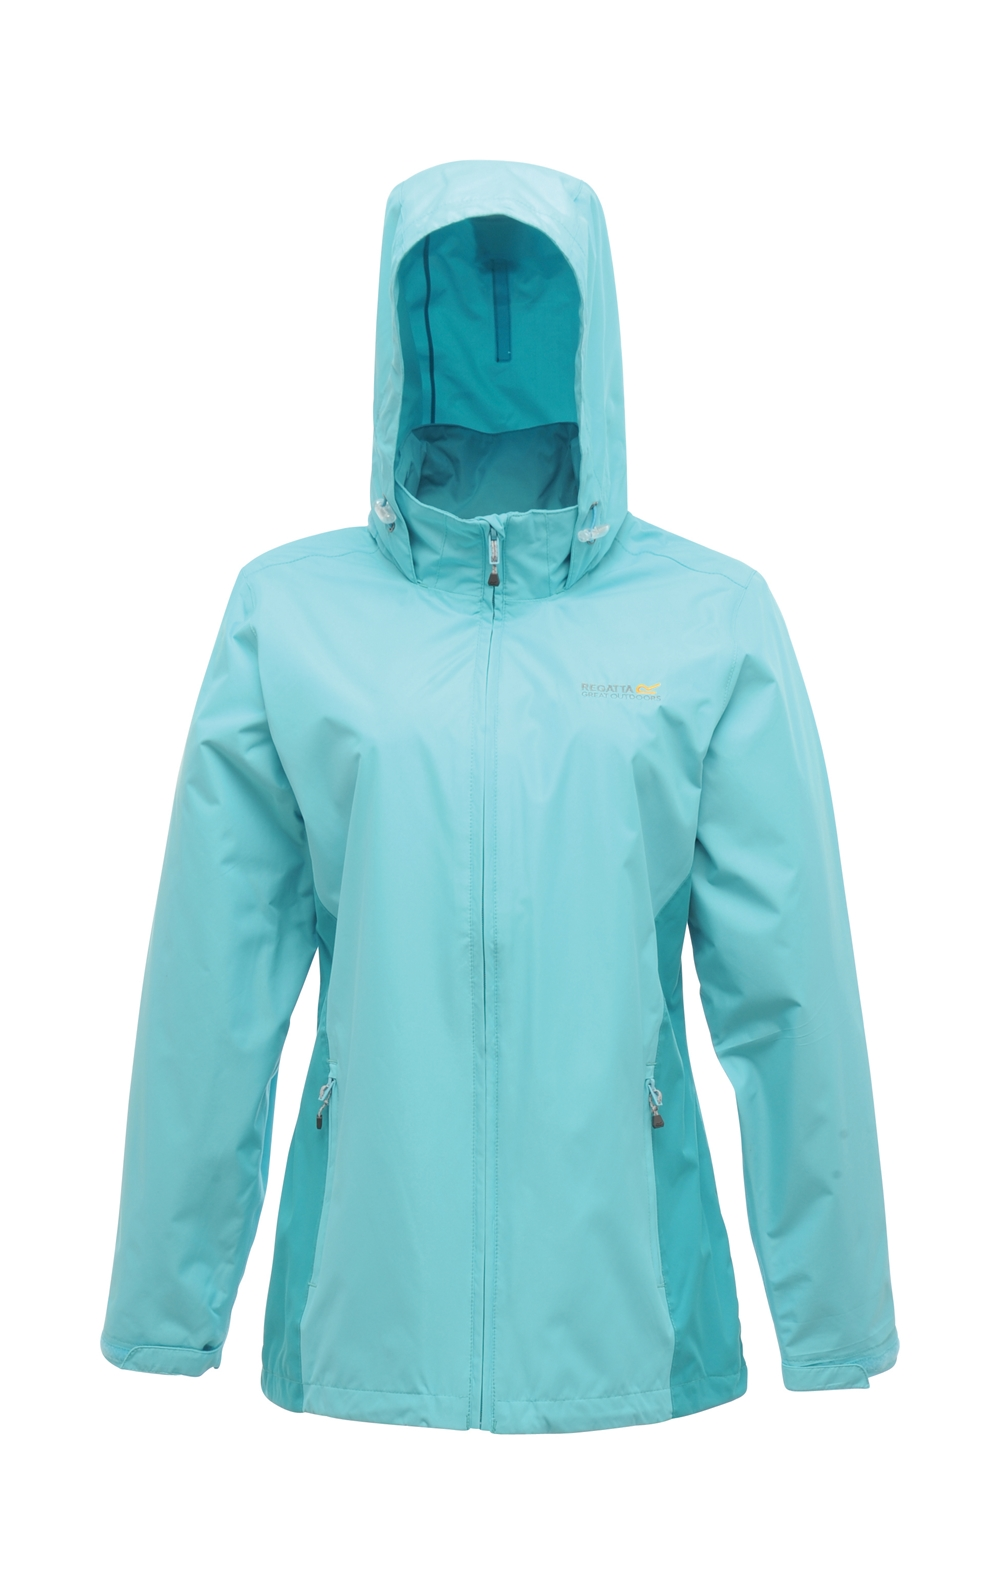 Find great deals on eBay for womens waterproof jackets plus size. Shop with confidence.